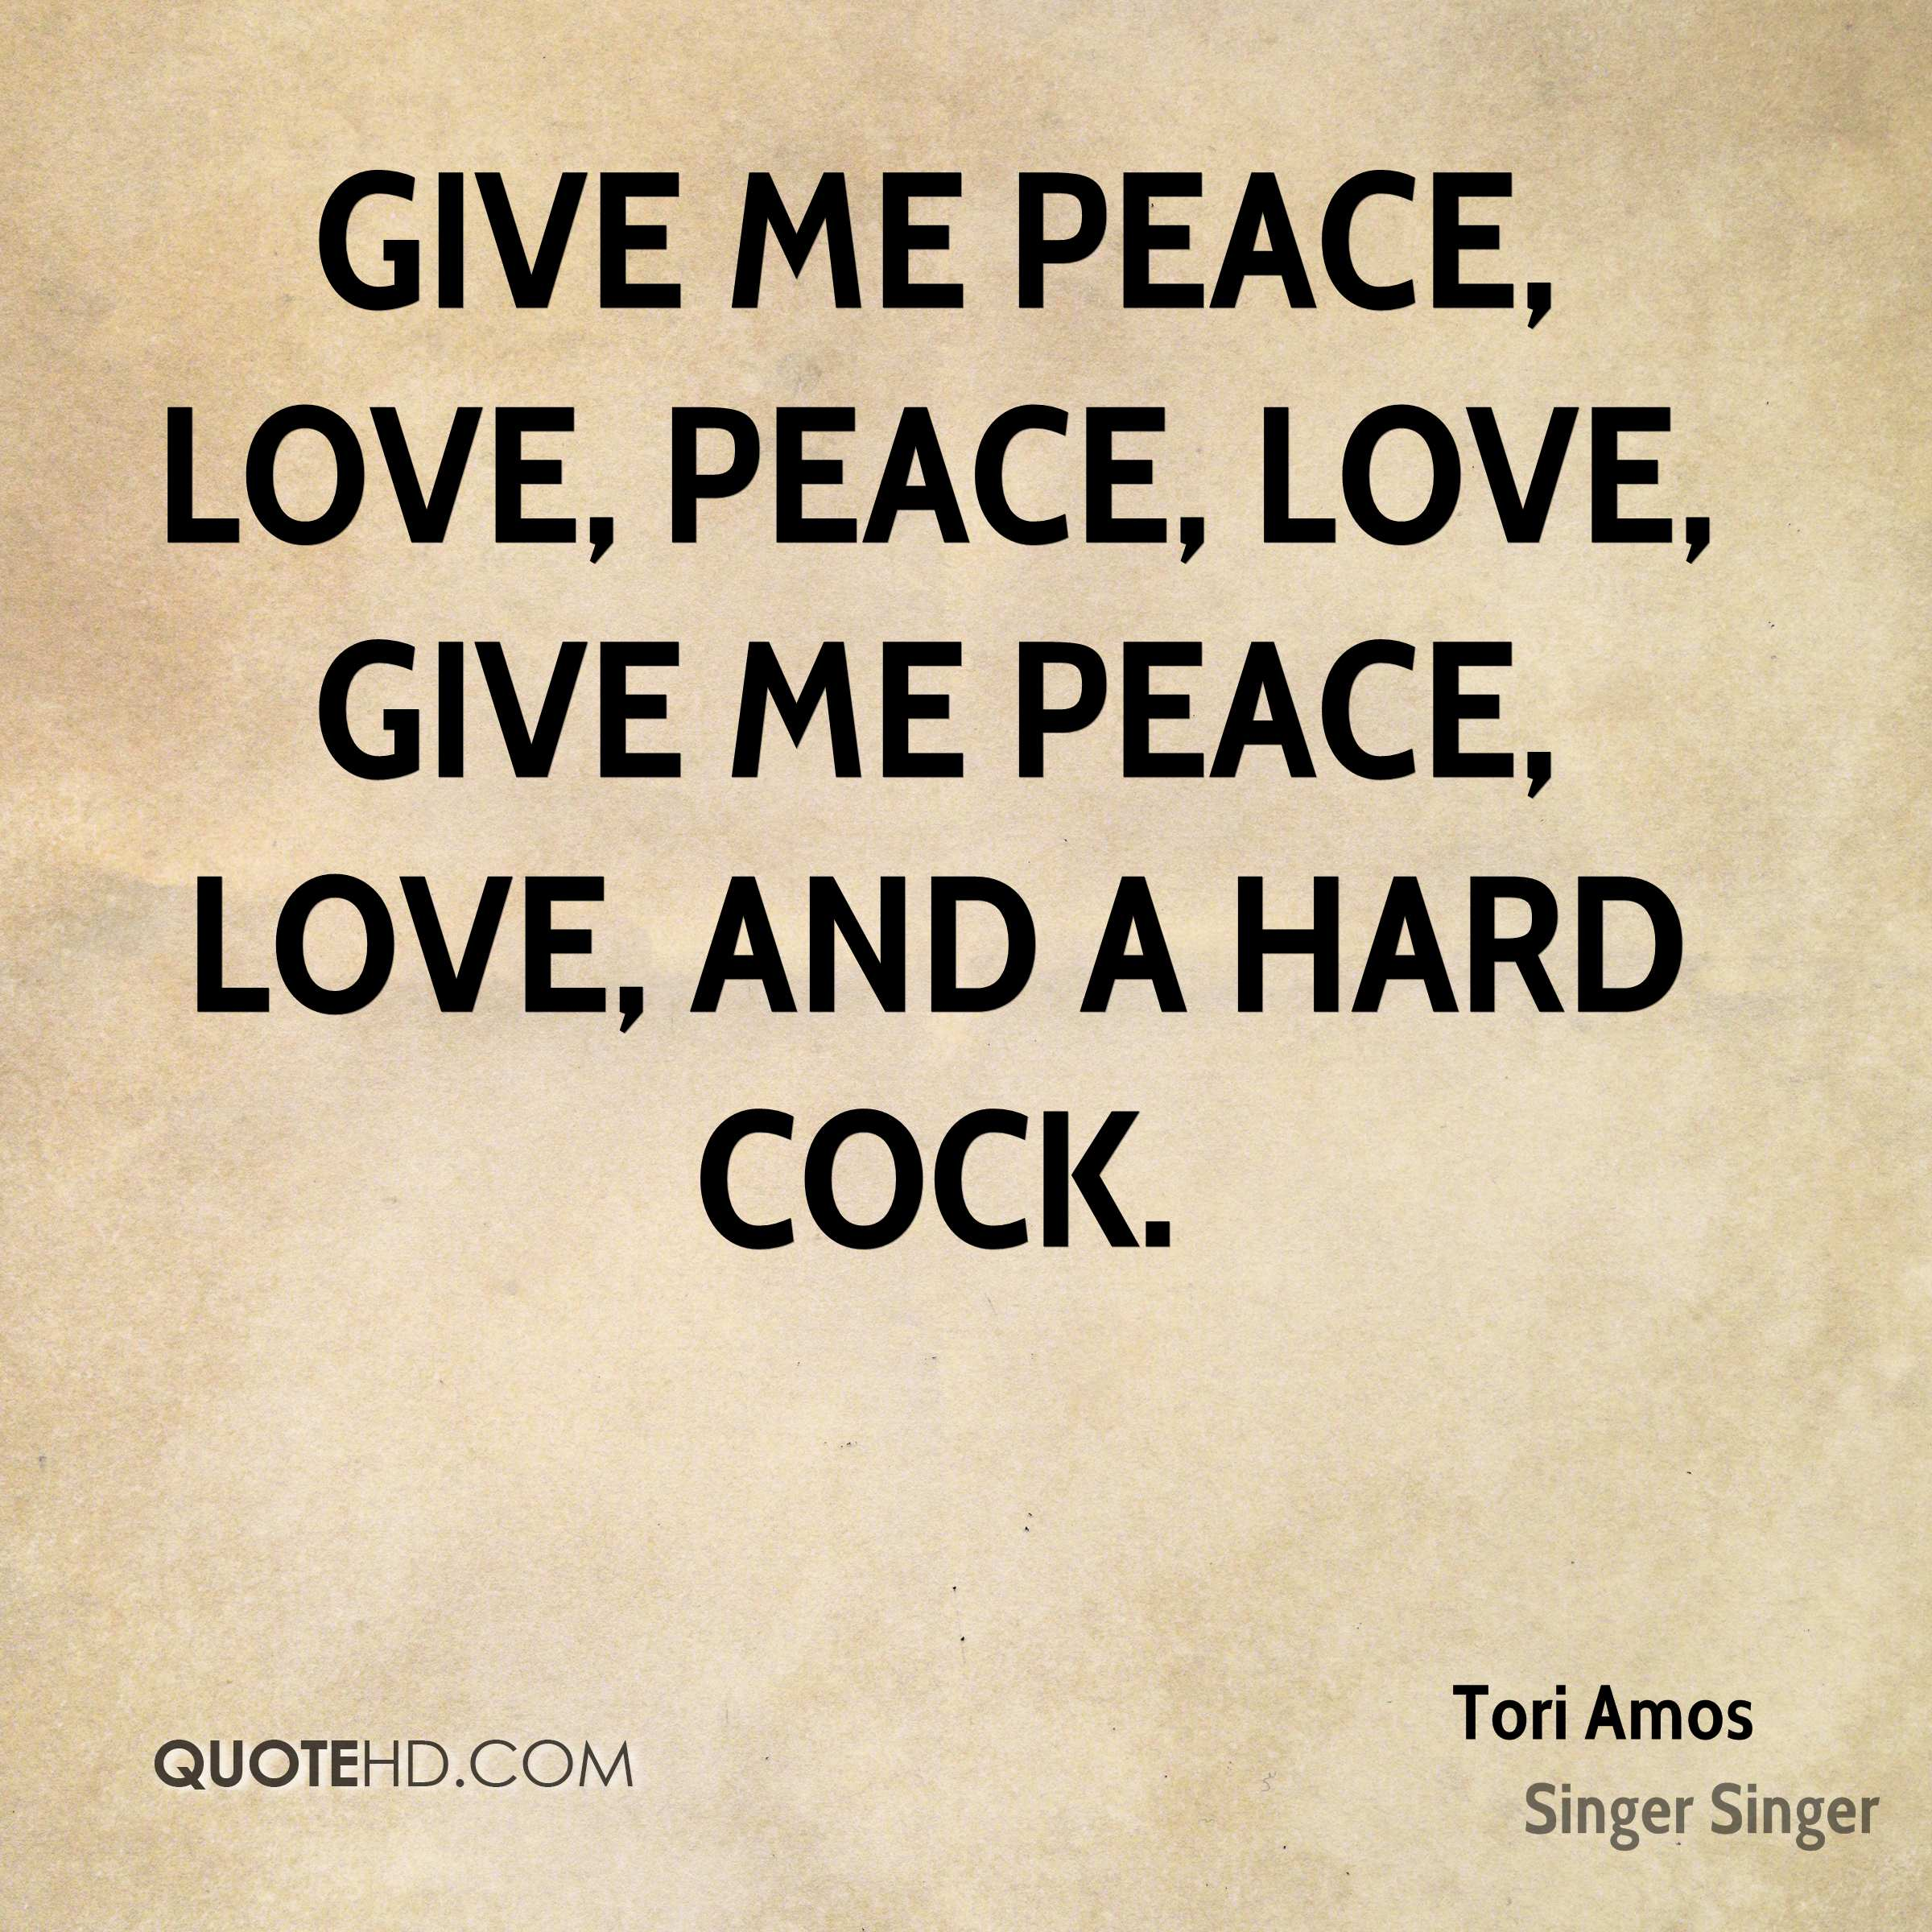 Quotes About Peace And Love Captivating Tori Amos Quotes  Quotehd